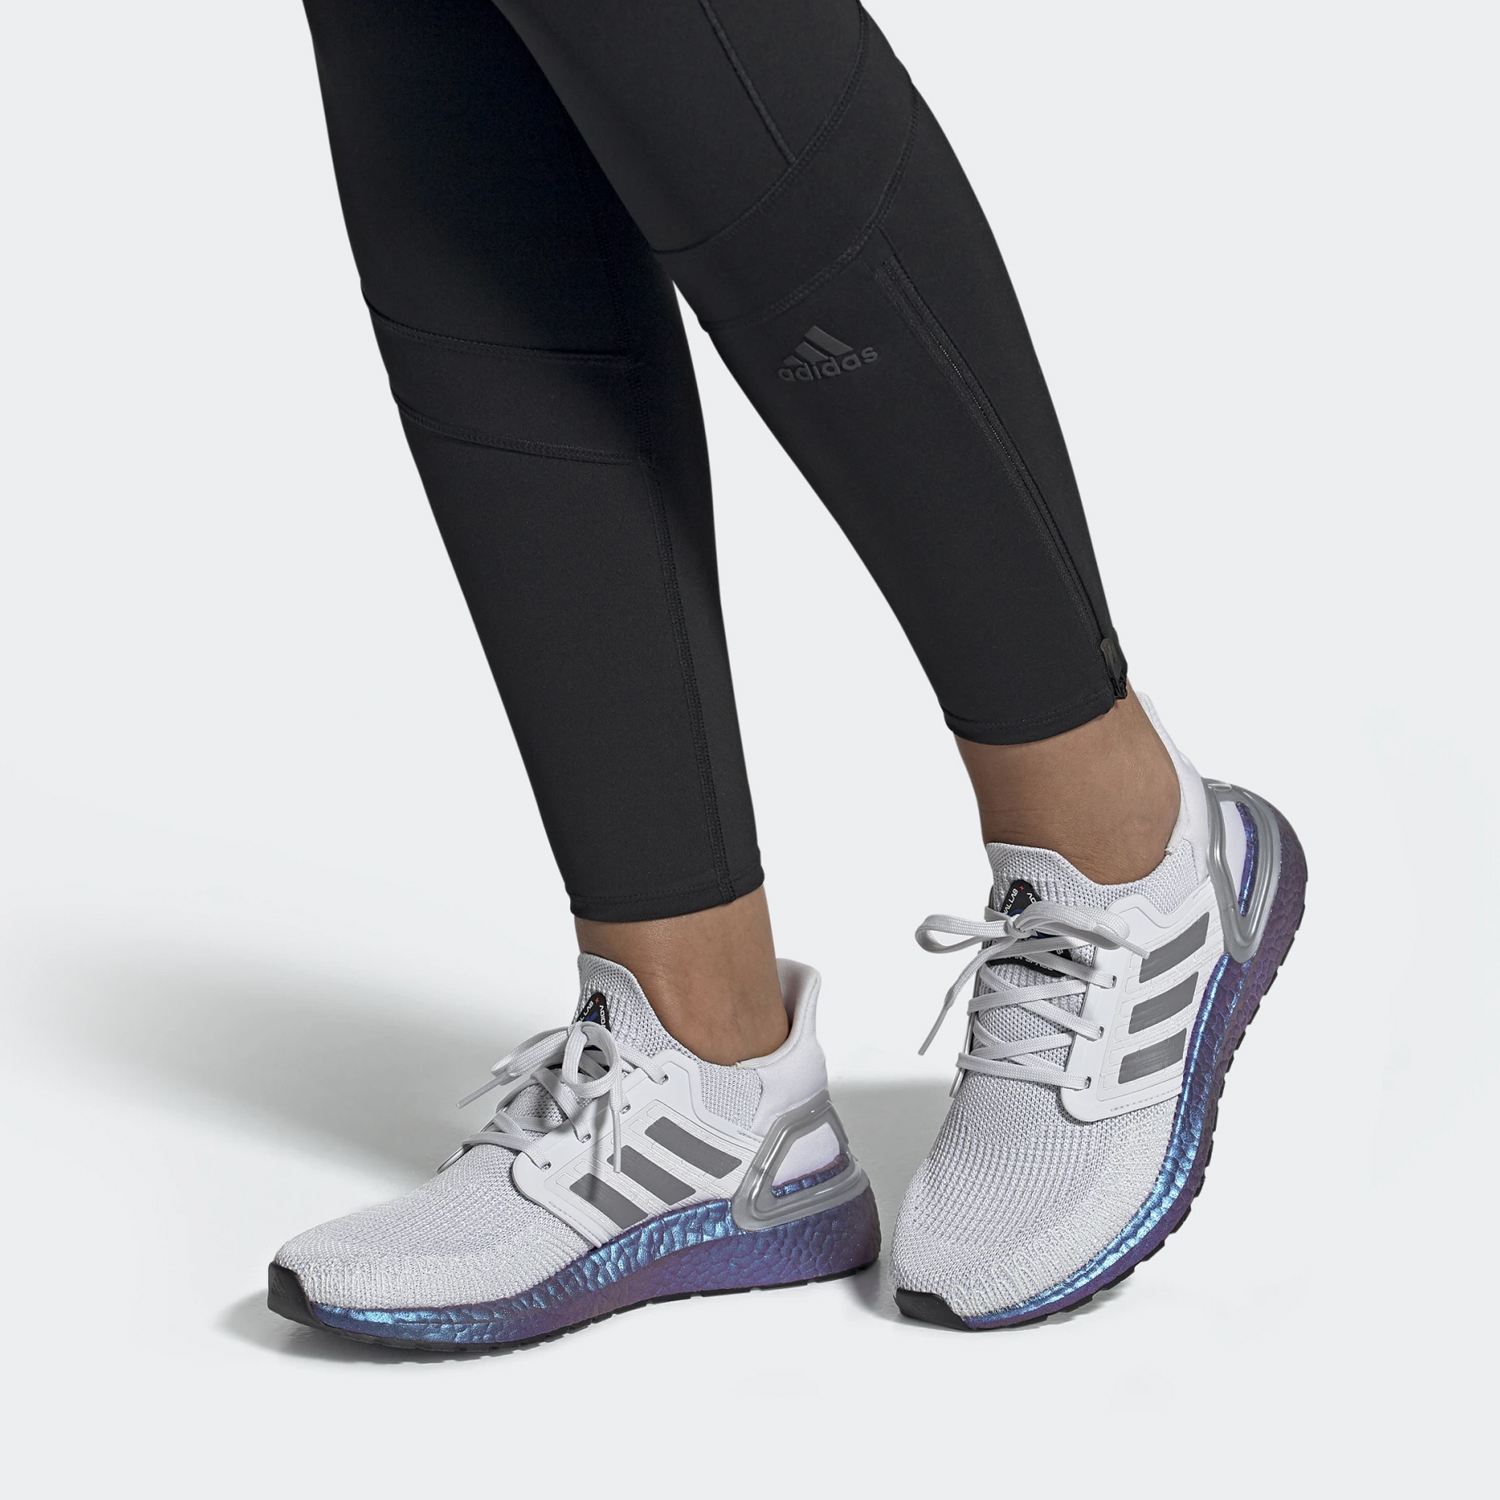 adidas Ultraboost 20 Women's Running Shoes